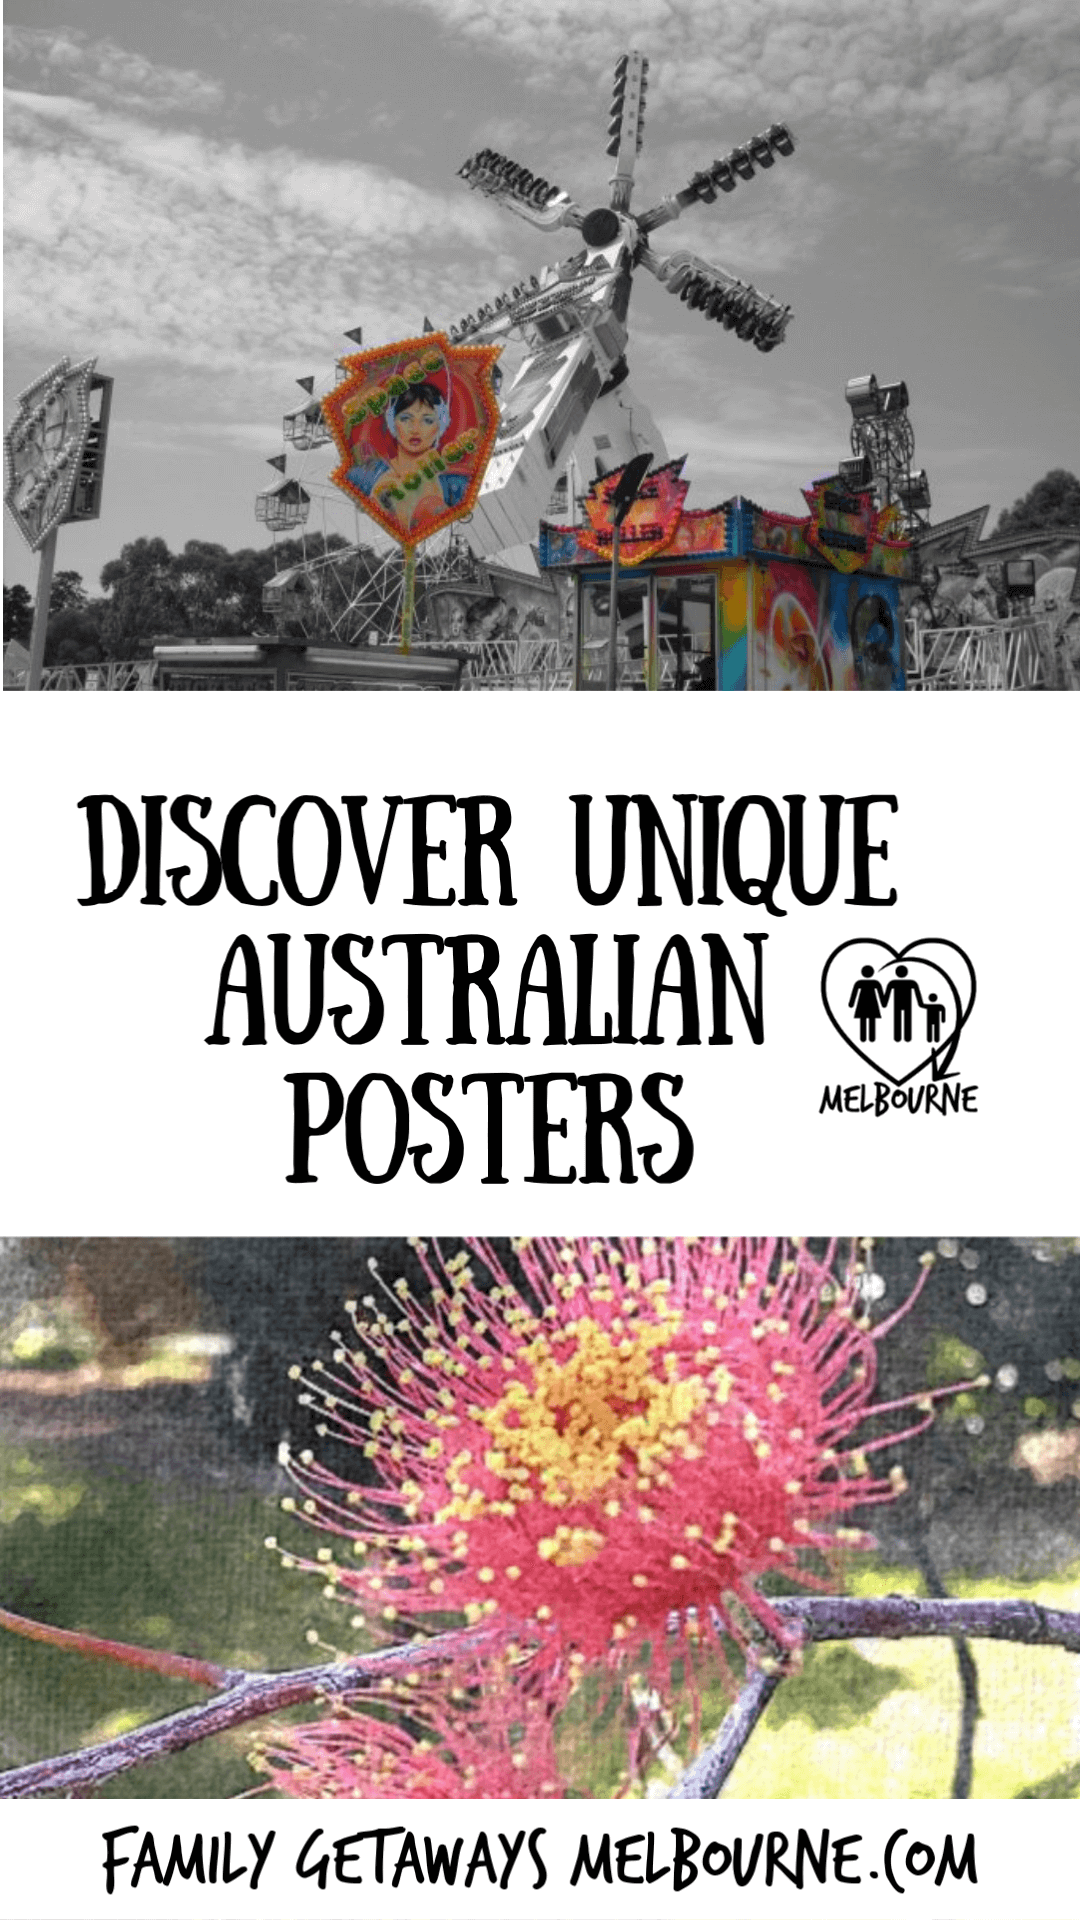 Image to pin to Pinterest for the site page on Australian posters